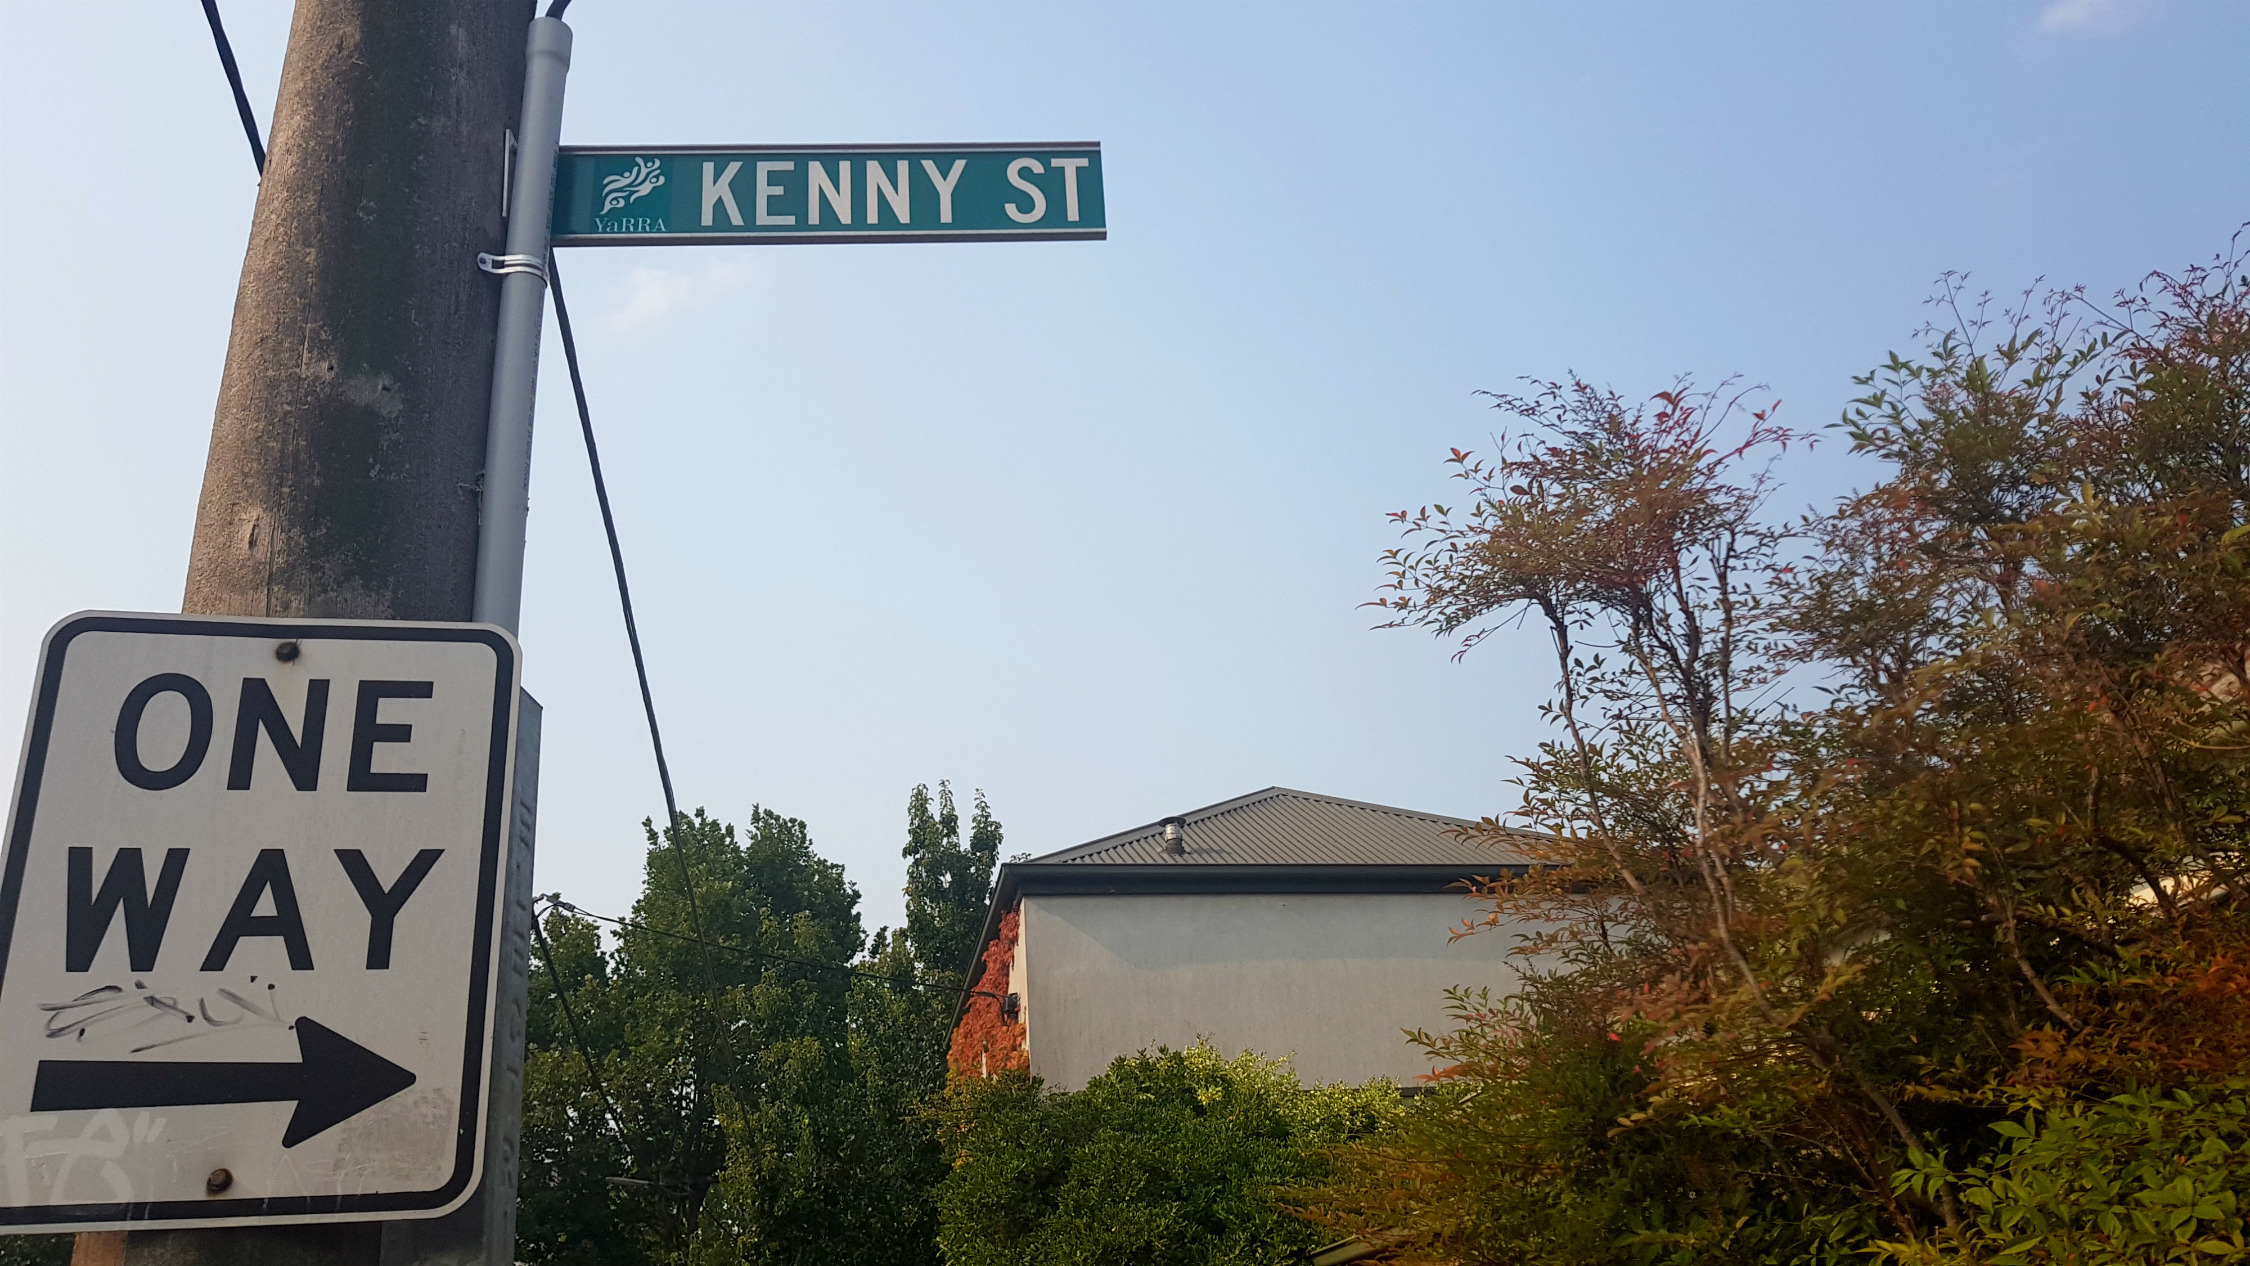 """A street sign with """"Kenny St"""" written on it. A house and tree are in the background"""